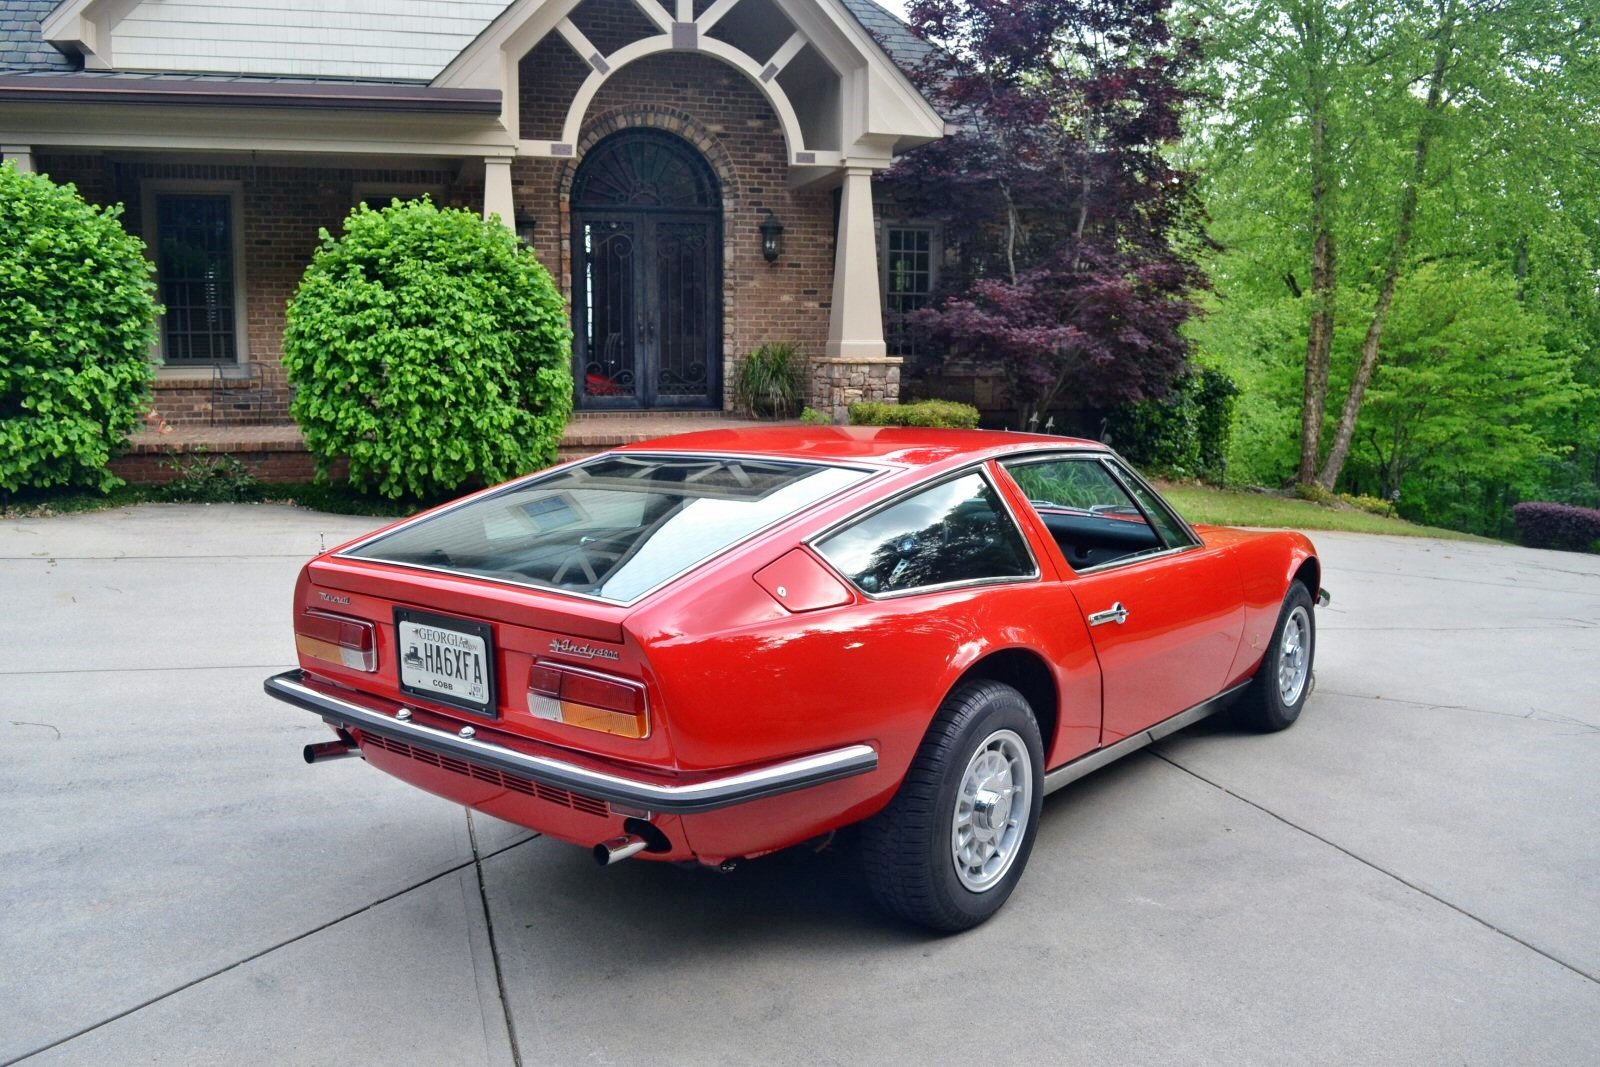 1973 Maserati Indy 4900 - Nicely restored For Sale   Car ...